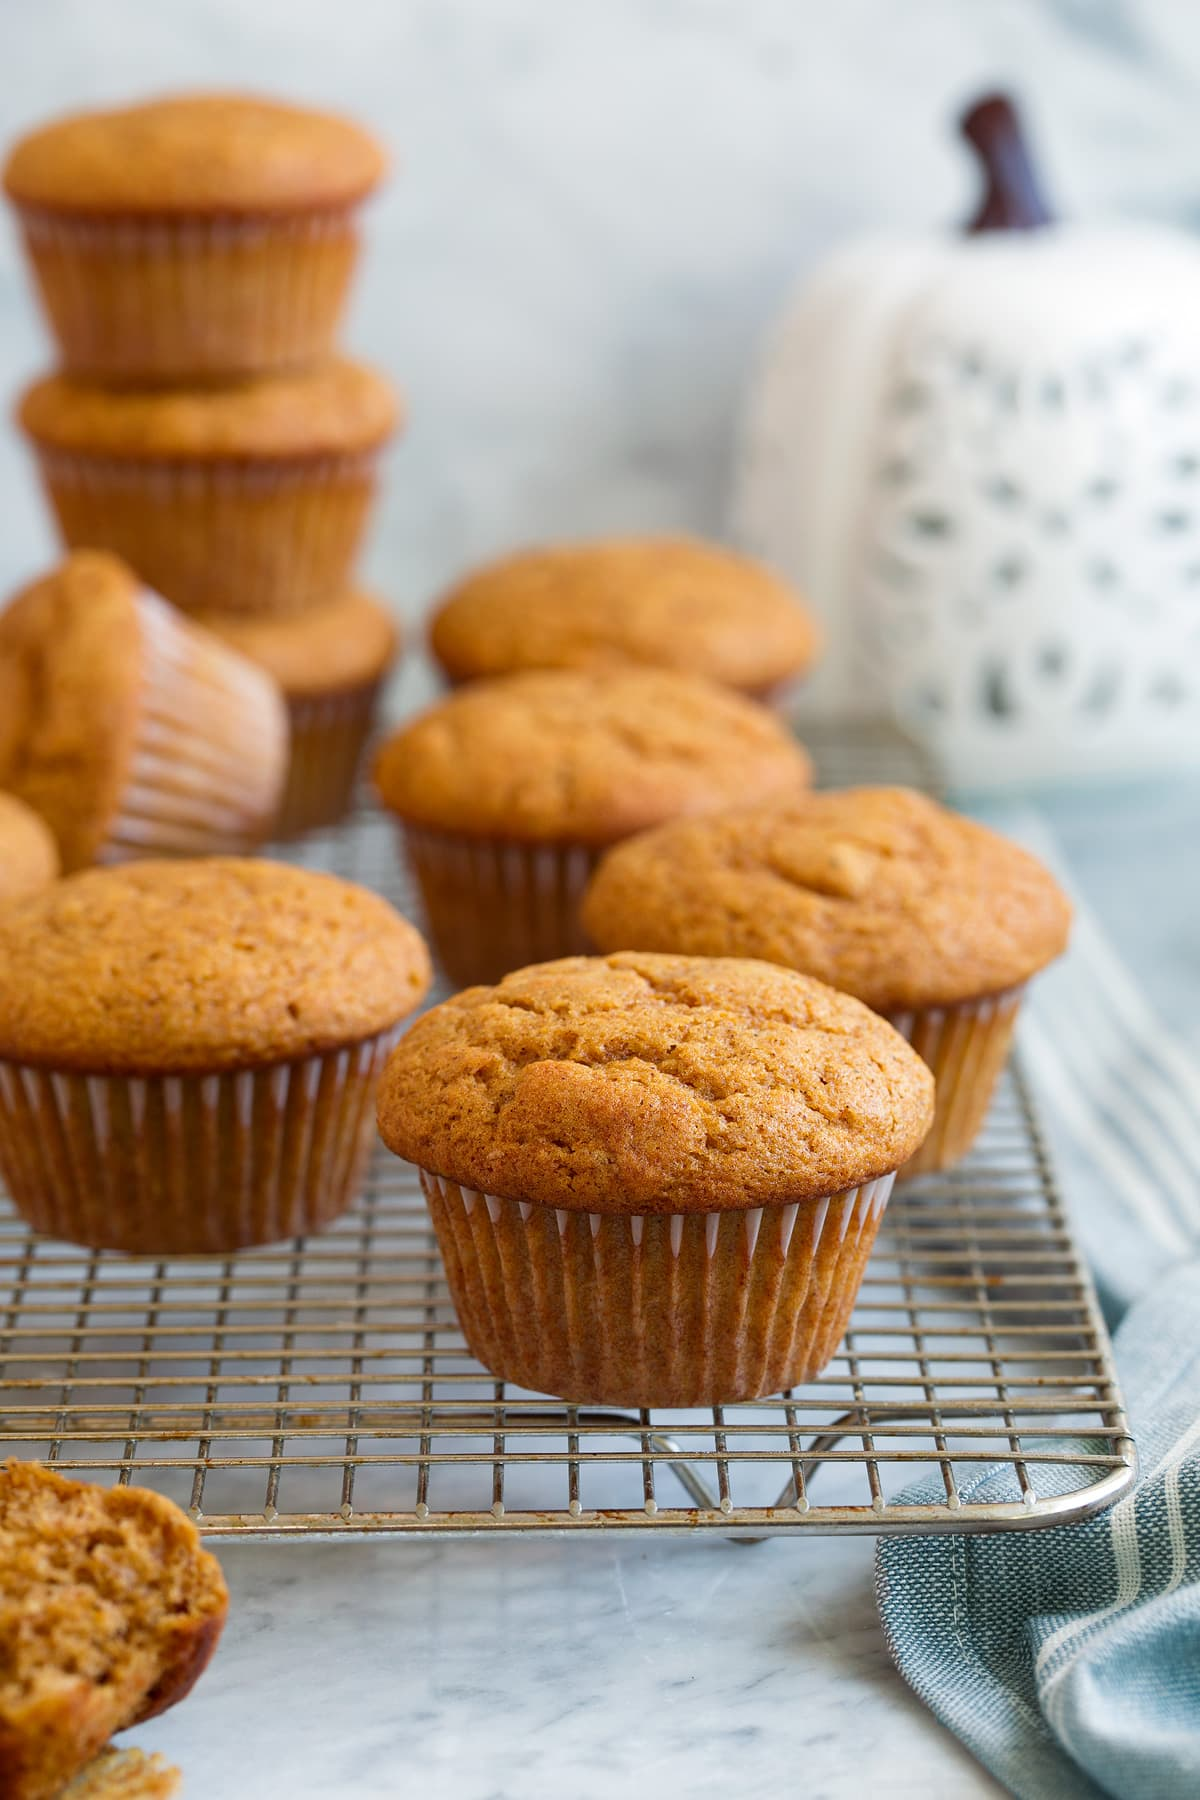 Pumpkin Muffins shown here on a wire cooling rack